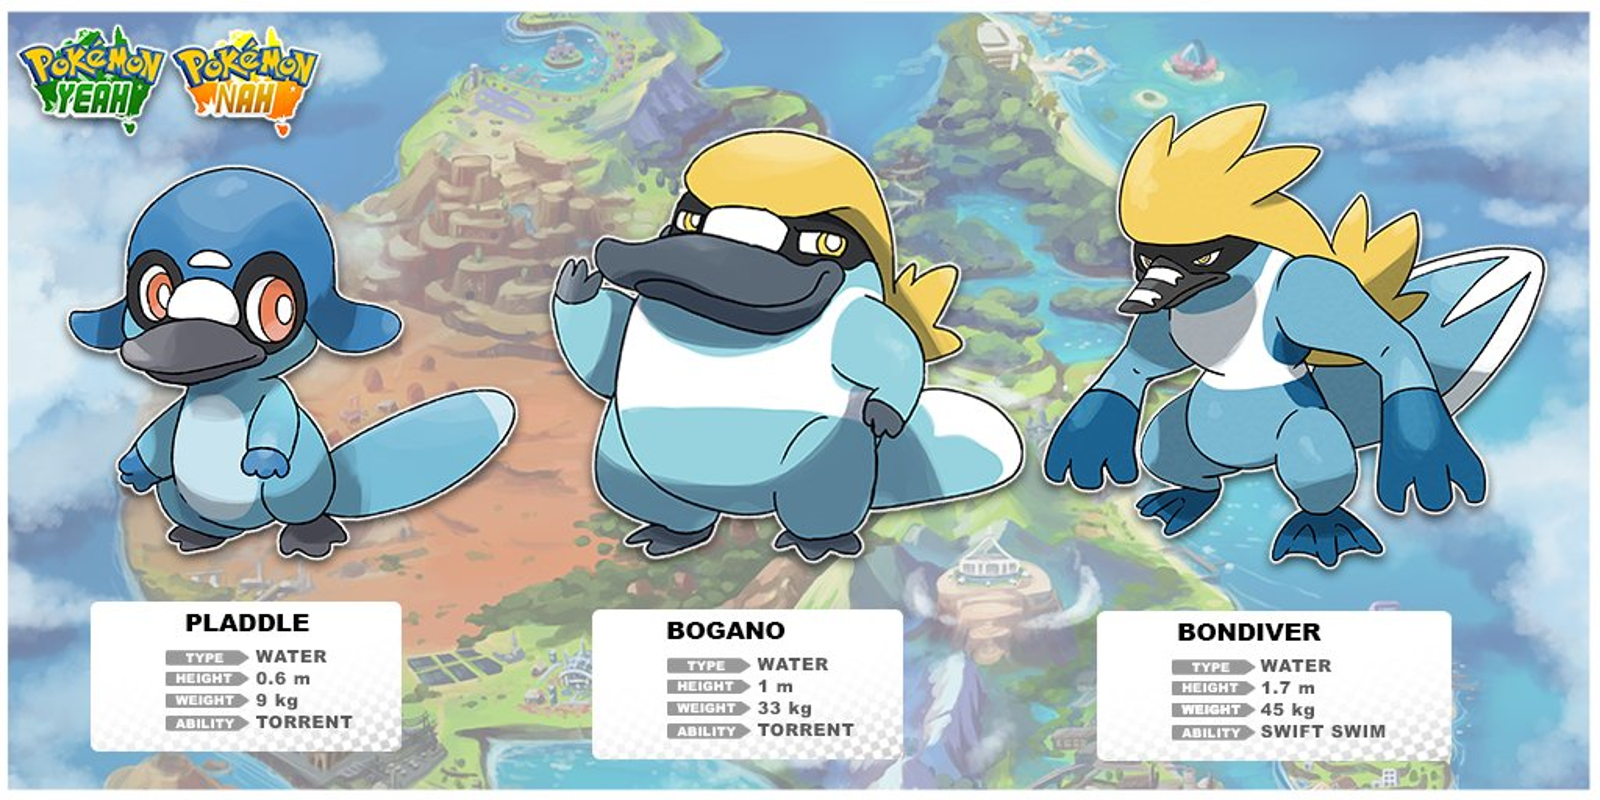 "Pladdle is based on a platypus. The mullet on ""Bogano"" (a ""Bogan"" is a loaded word that dictionaries generously describe as ""an uncouth or unsophisticated person regarded as being of low social status"") is a nice touch."